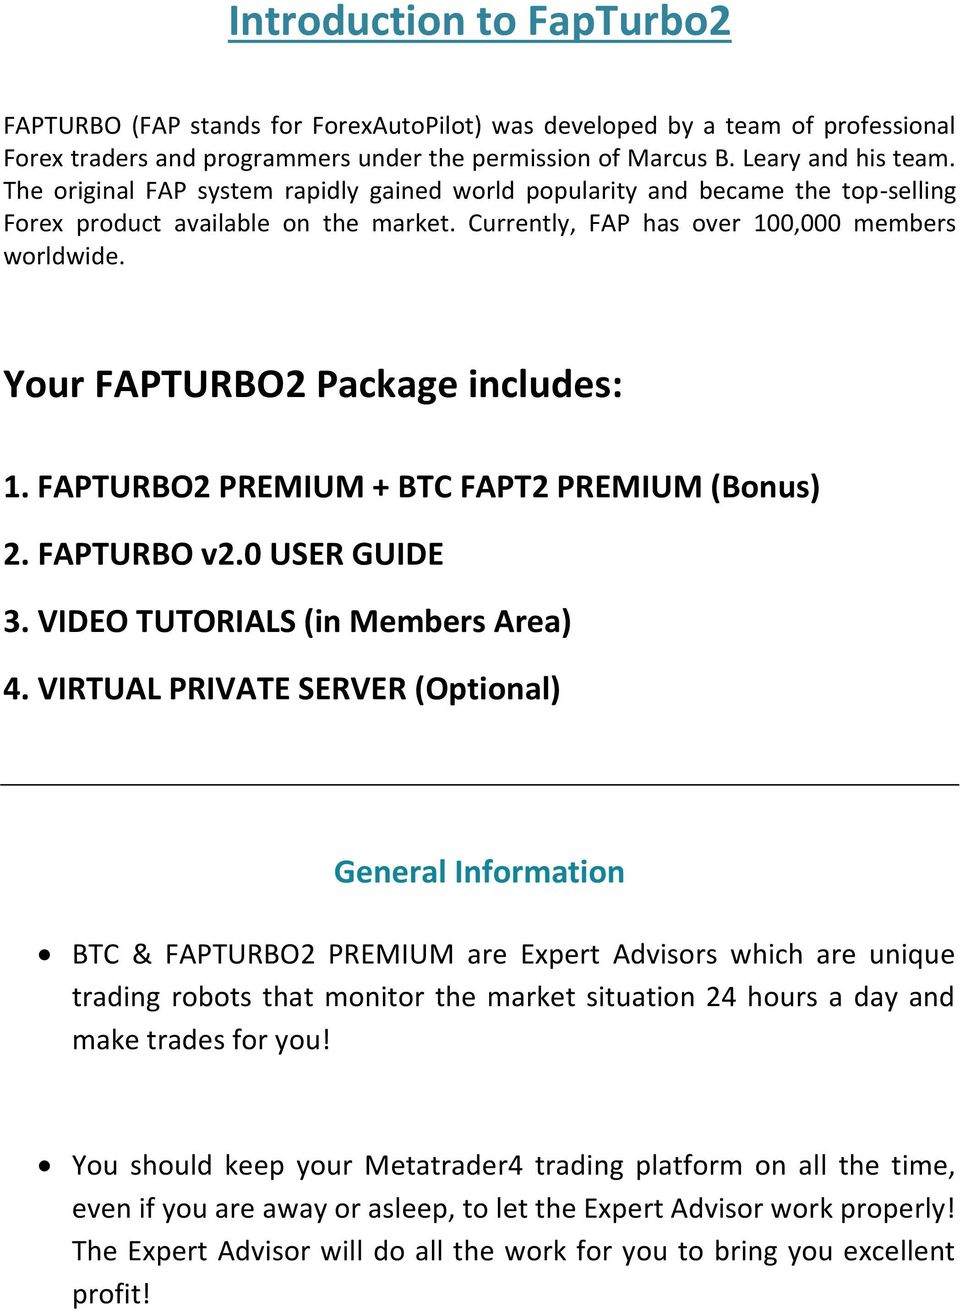 Your FAPTURBO2 Package includes: 1. FAPTURBO2 PREMIUM + BTC FAPT2 PREMIUM (Bonus) 2. FAPTURBO v2.0 USER GUIDE 3. VIDEO TUTORIALS (in Members Area) 4.